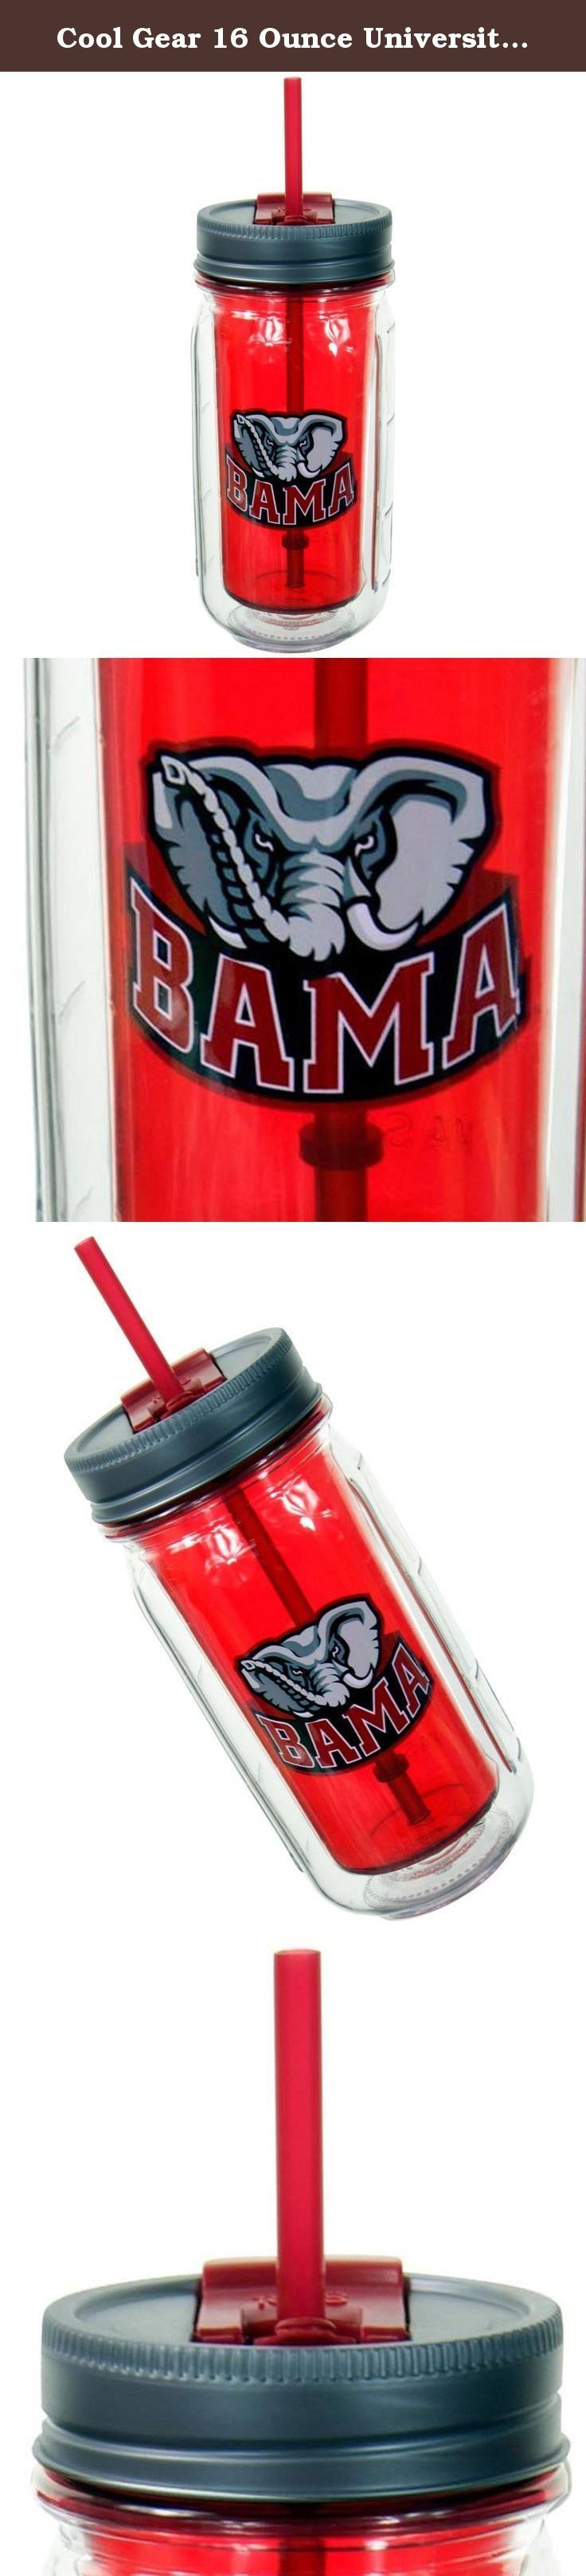 Cool Gear 16 Ounce University of Alabama Crimson Tide Mason Jar (2 Pack). Roll tide! Hit up your party or tailgate with these Cool Gear Alabama Crimson Tide 16-Ounce Mason Jar Water Bottles. They are Nick Saban approved and show off your spirit for your favorite team. These water bottles do the job and never let you go anywhere thirsty. With a 16-ounce capacity, you'll never be dehydrated again. They are great to take to the gym, tailgating, biking on campus, to class, work, or wherever…